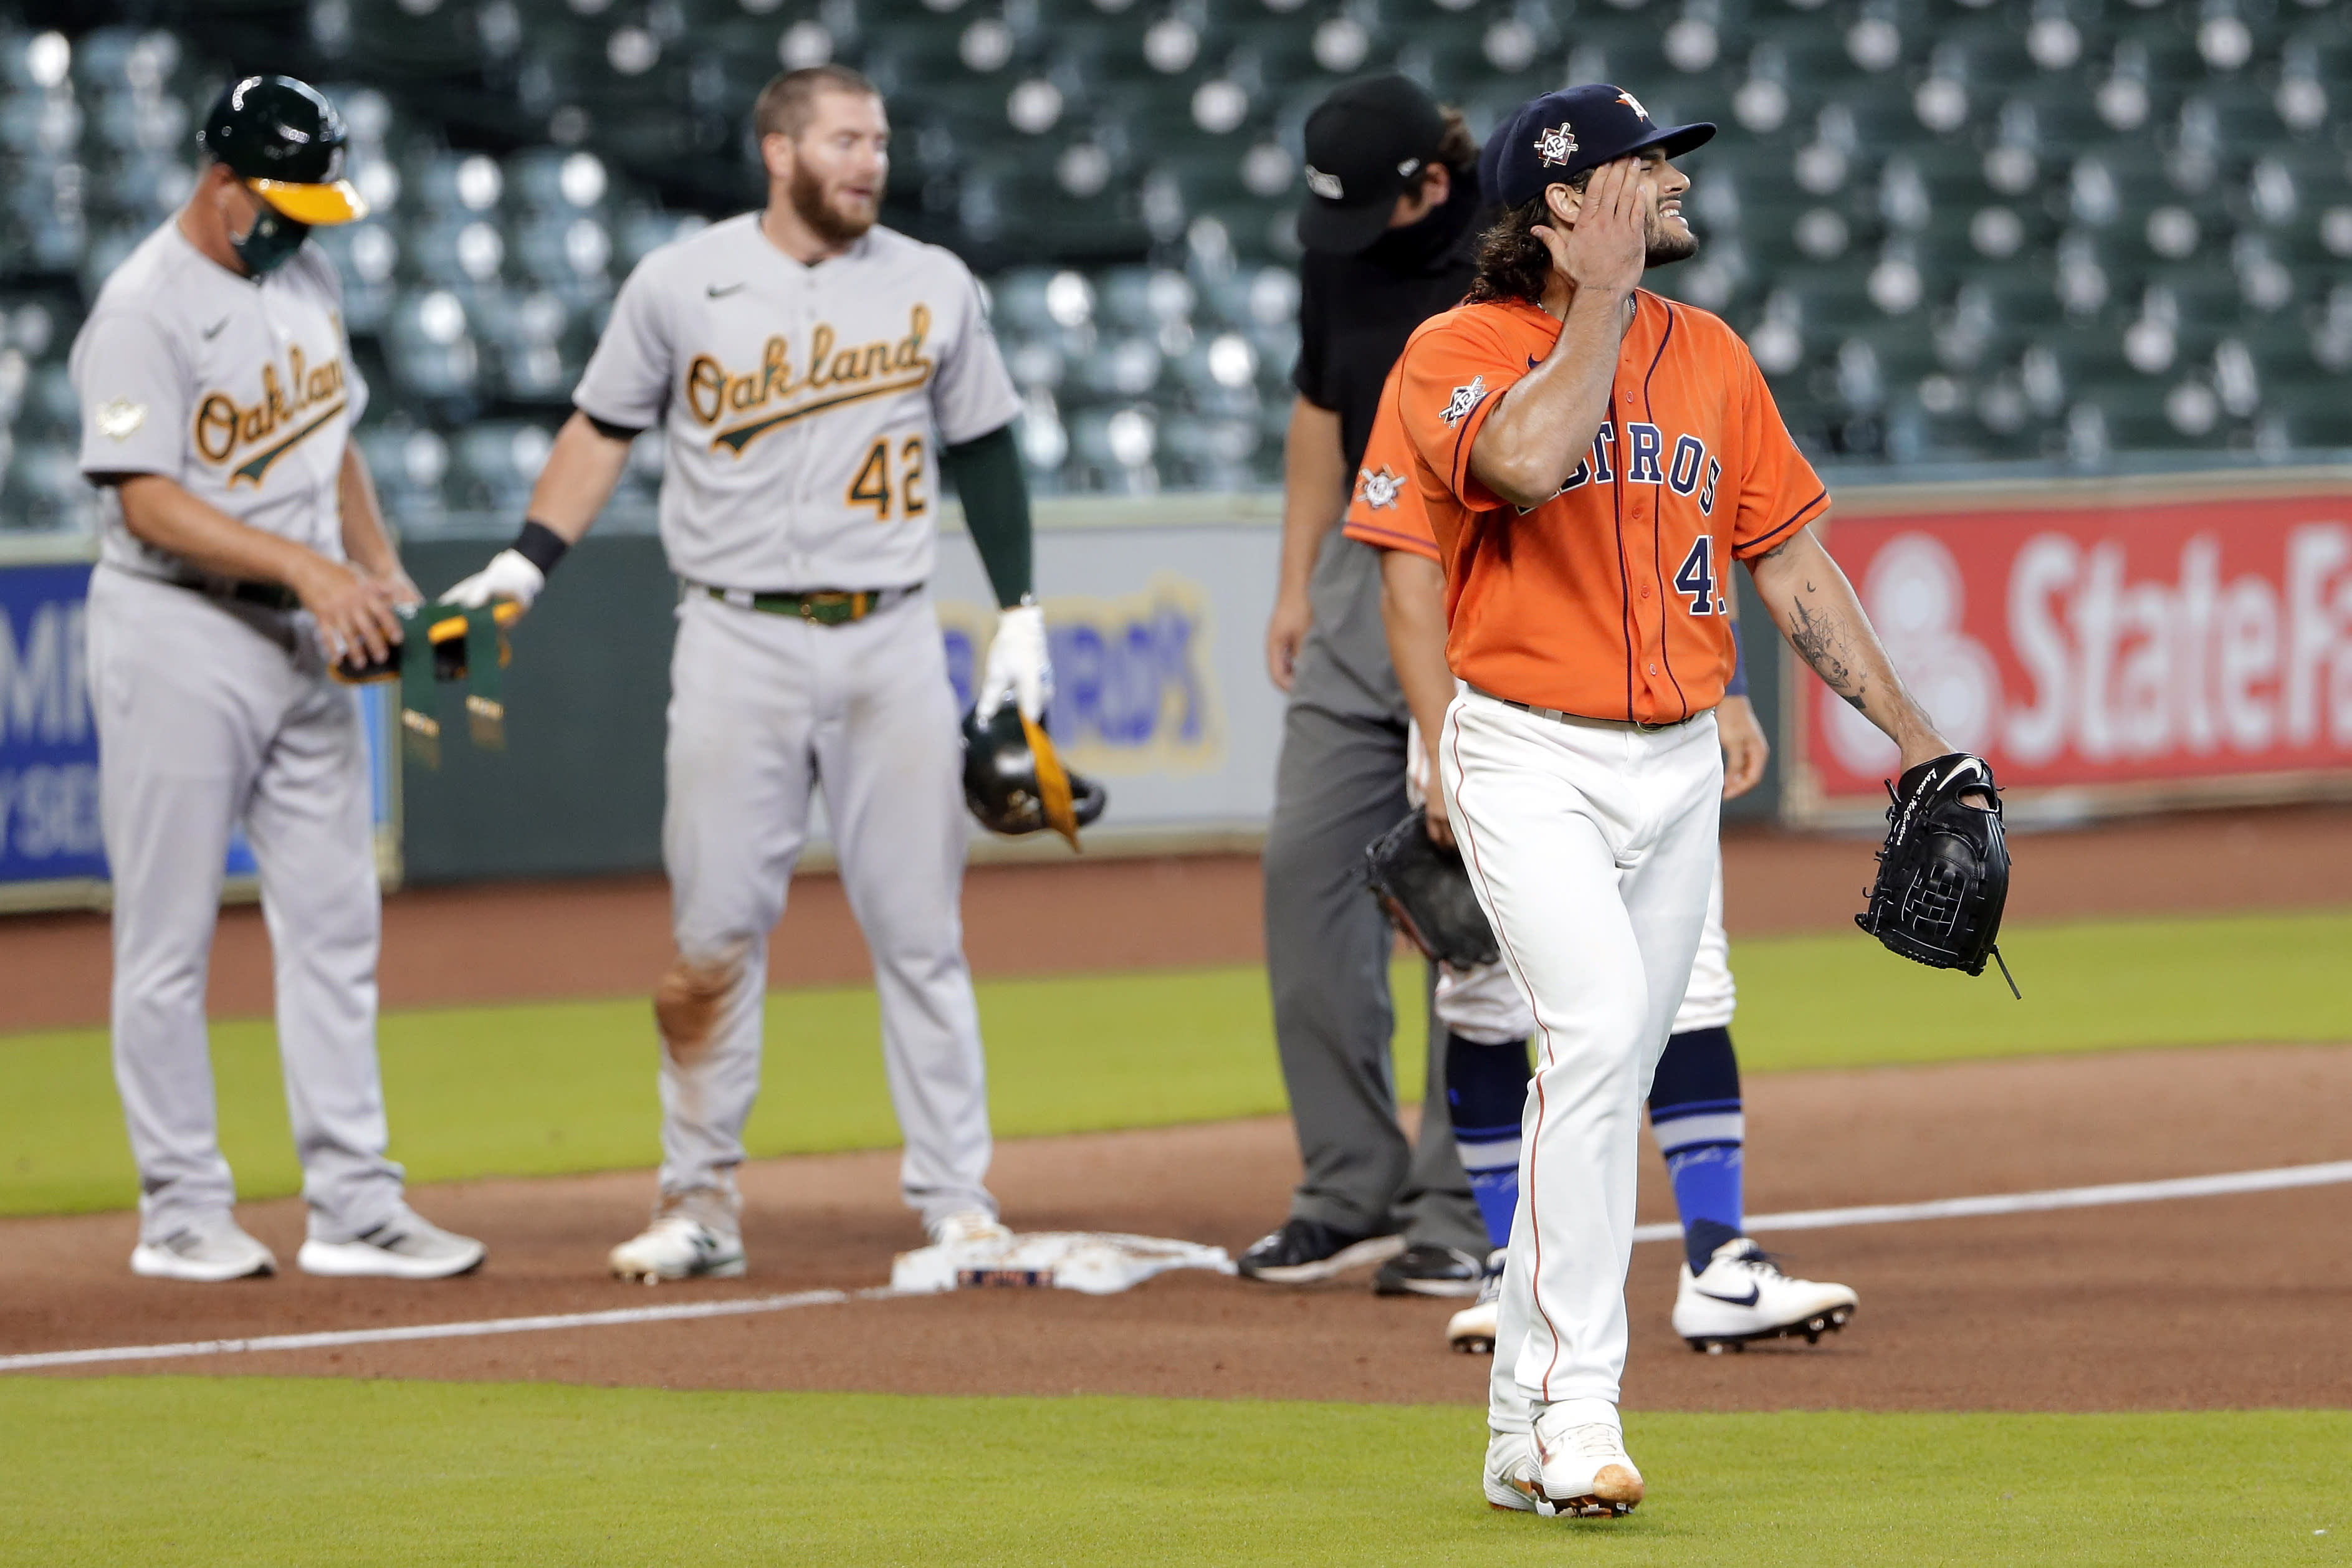 Oakland Athletics' Robbie Grossman stands on third base as Houston Astros starting pitcher Lance McCullers Jr., right, walks by after McCullers' throwing error to first base allowed a triple by him during the sixth inning of the first baseball game of a doubleheader Saturday, Aug. 29, 2020, in Houston. (AP Photo/Michael Wyke)